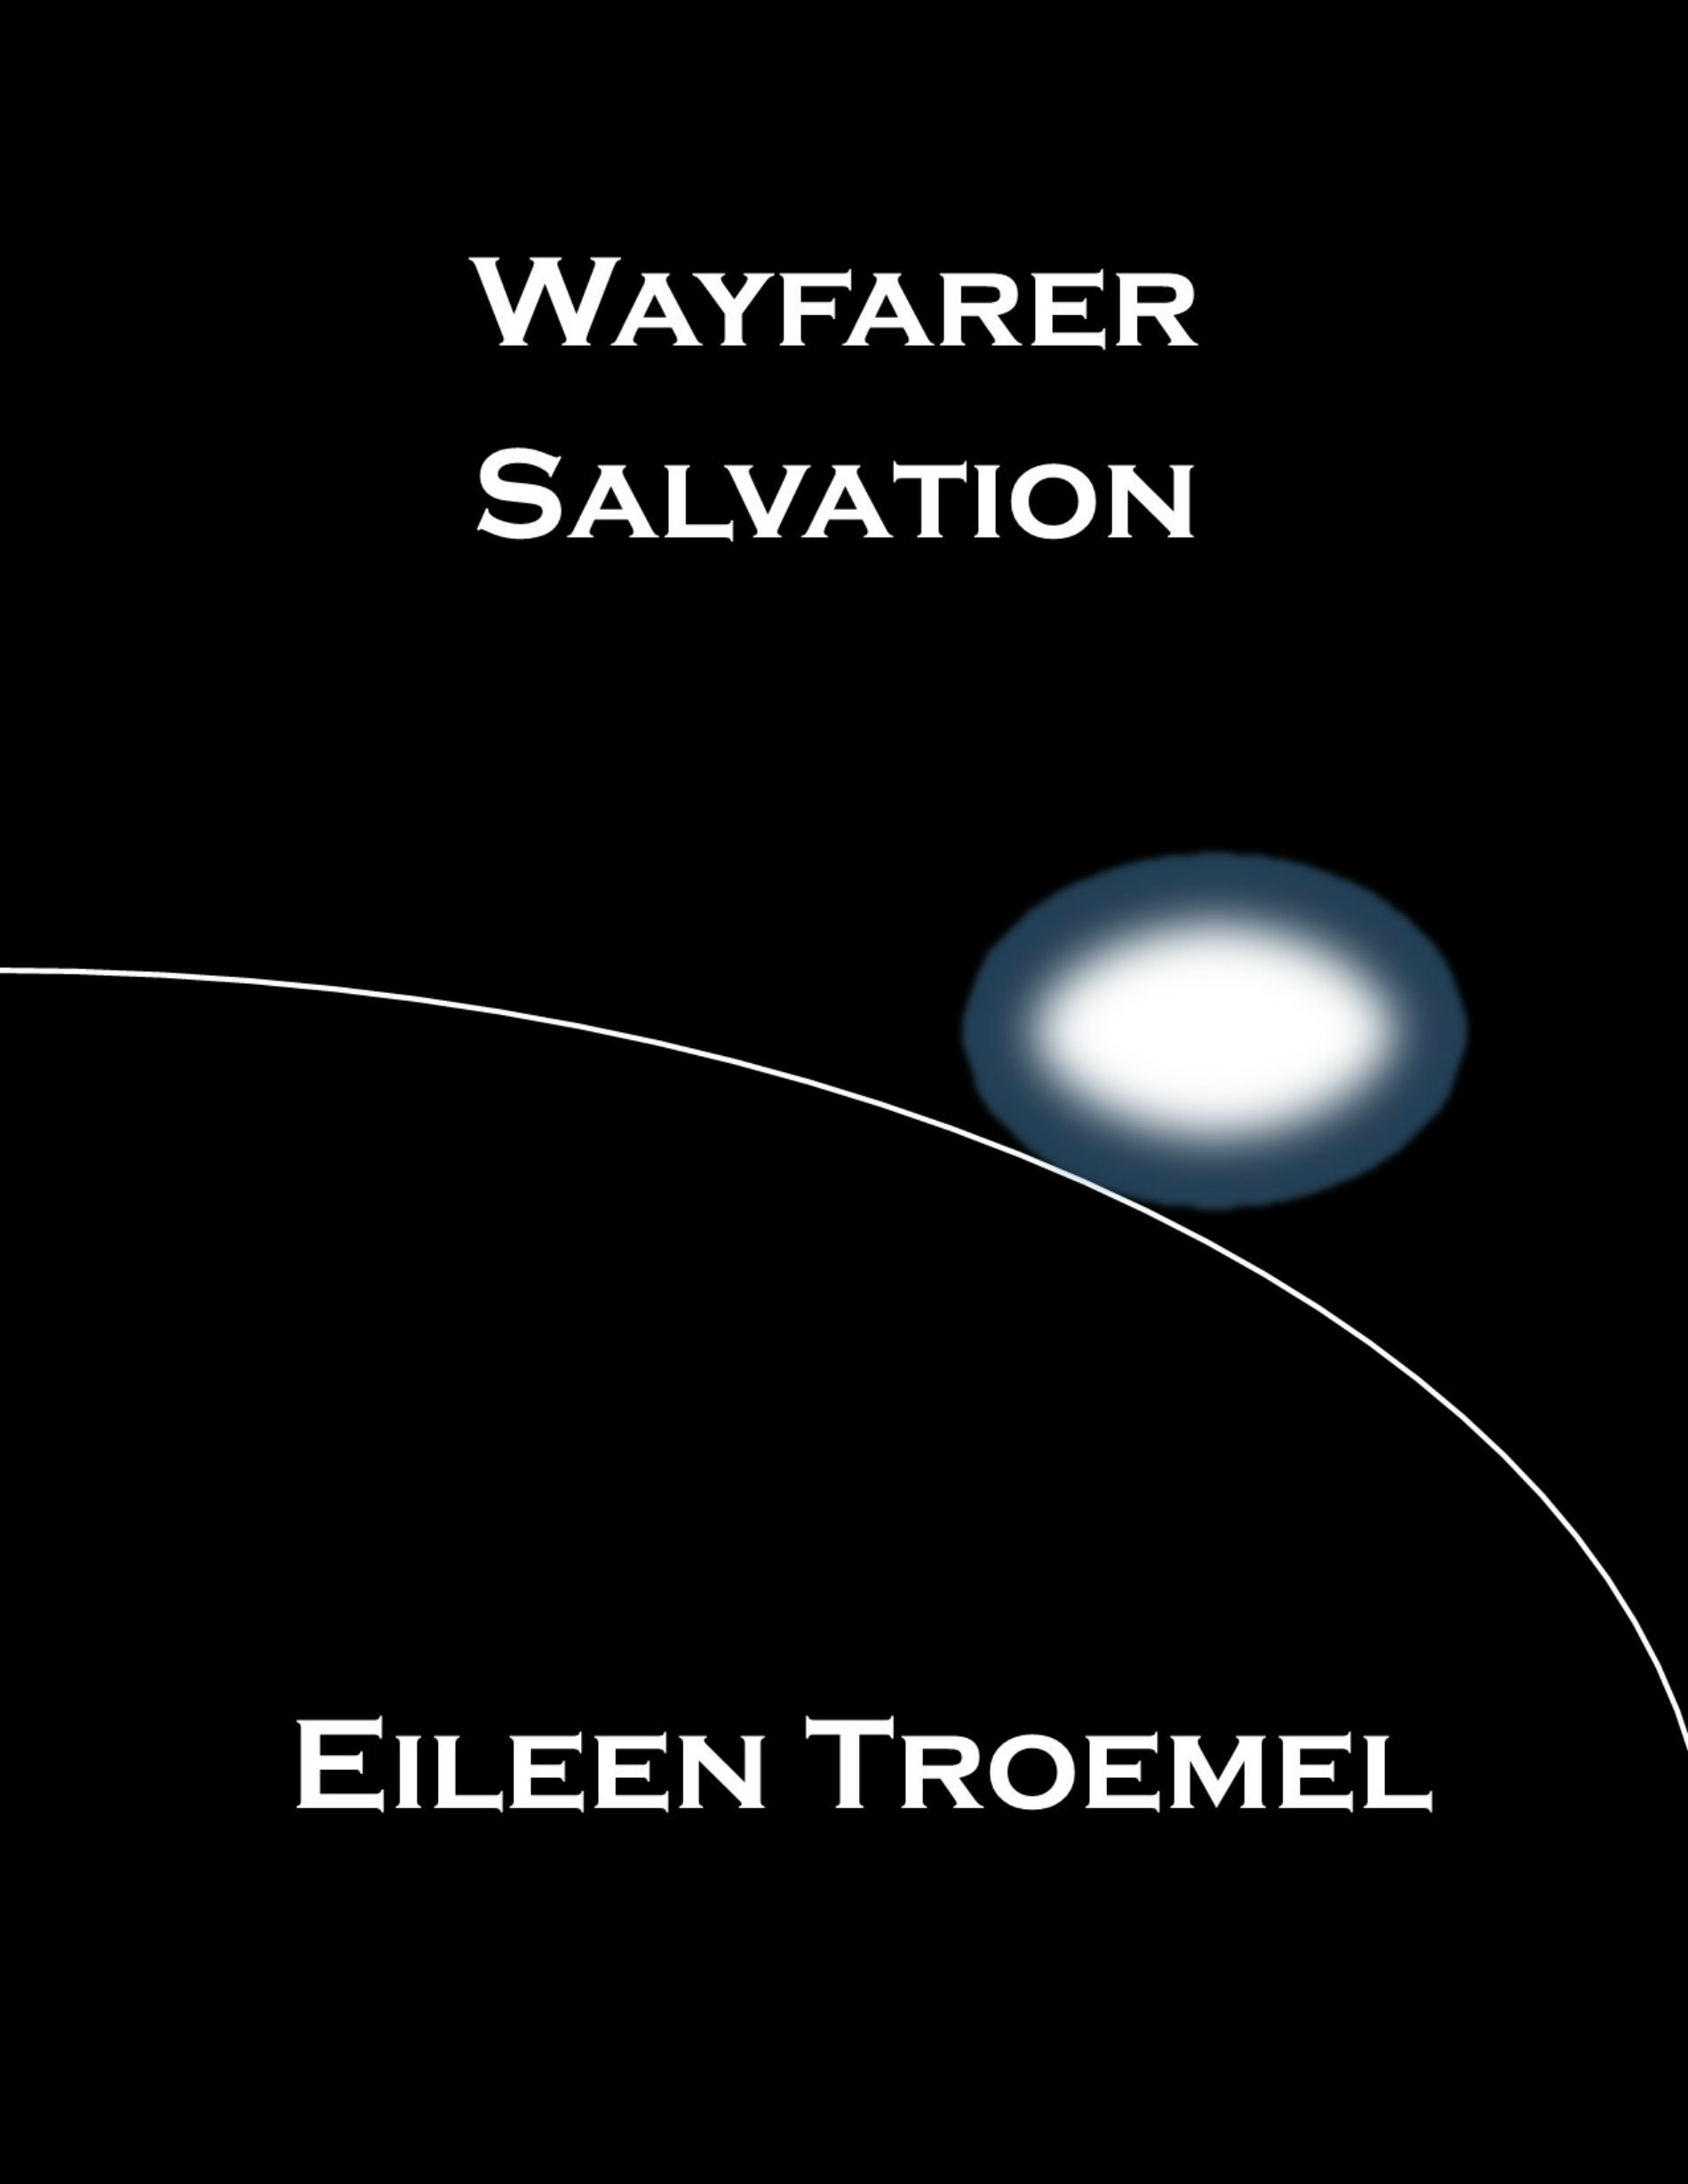 Wayfarer Salvation Eileen Troemel